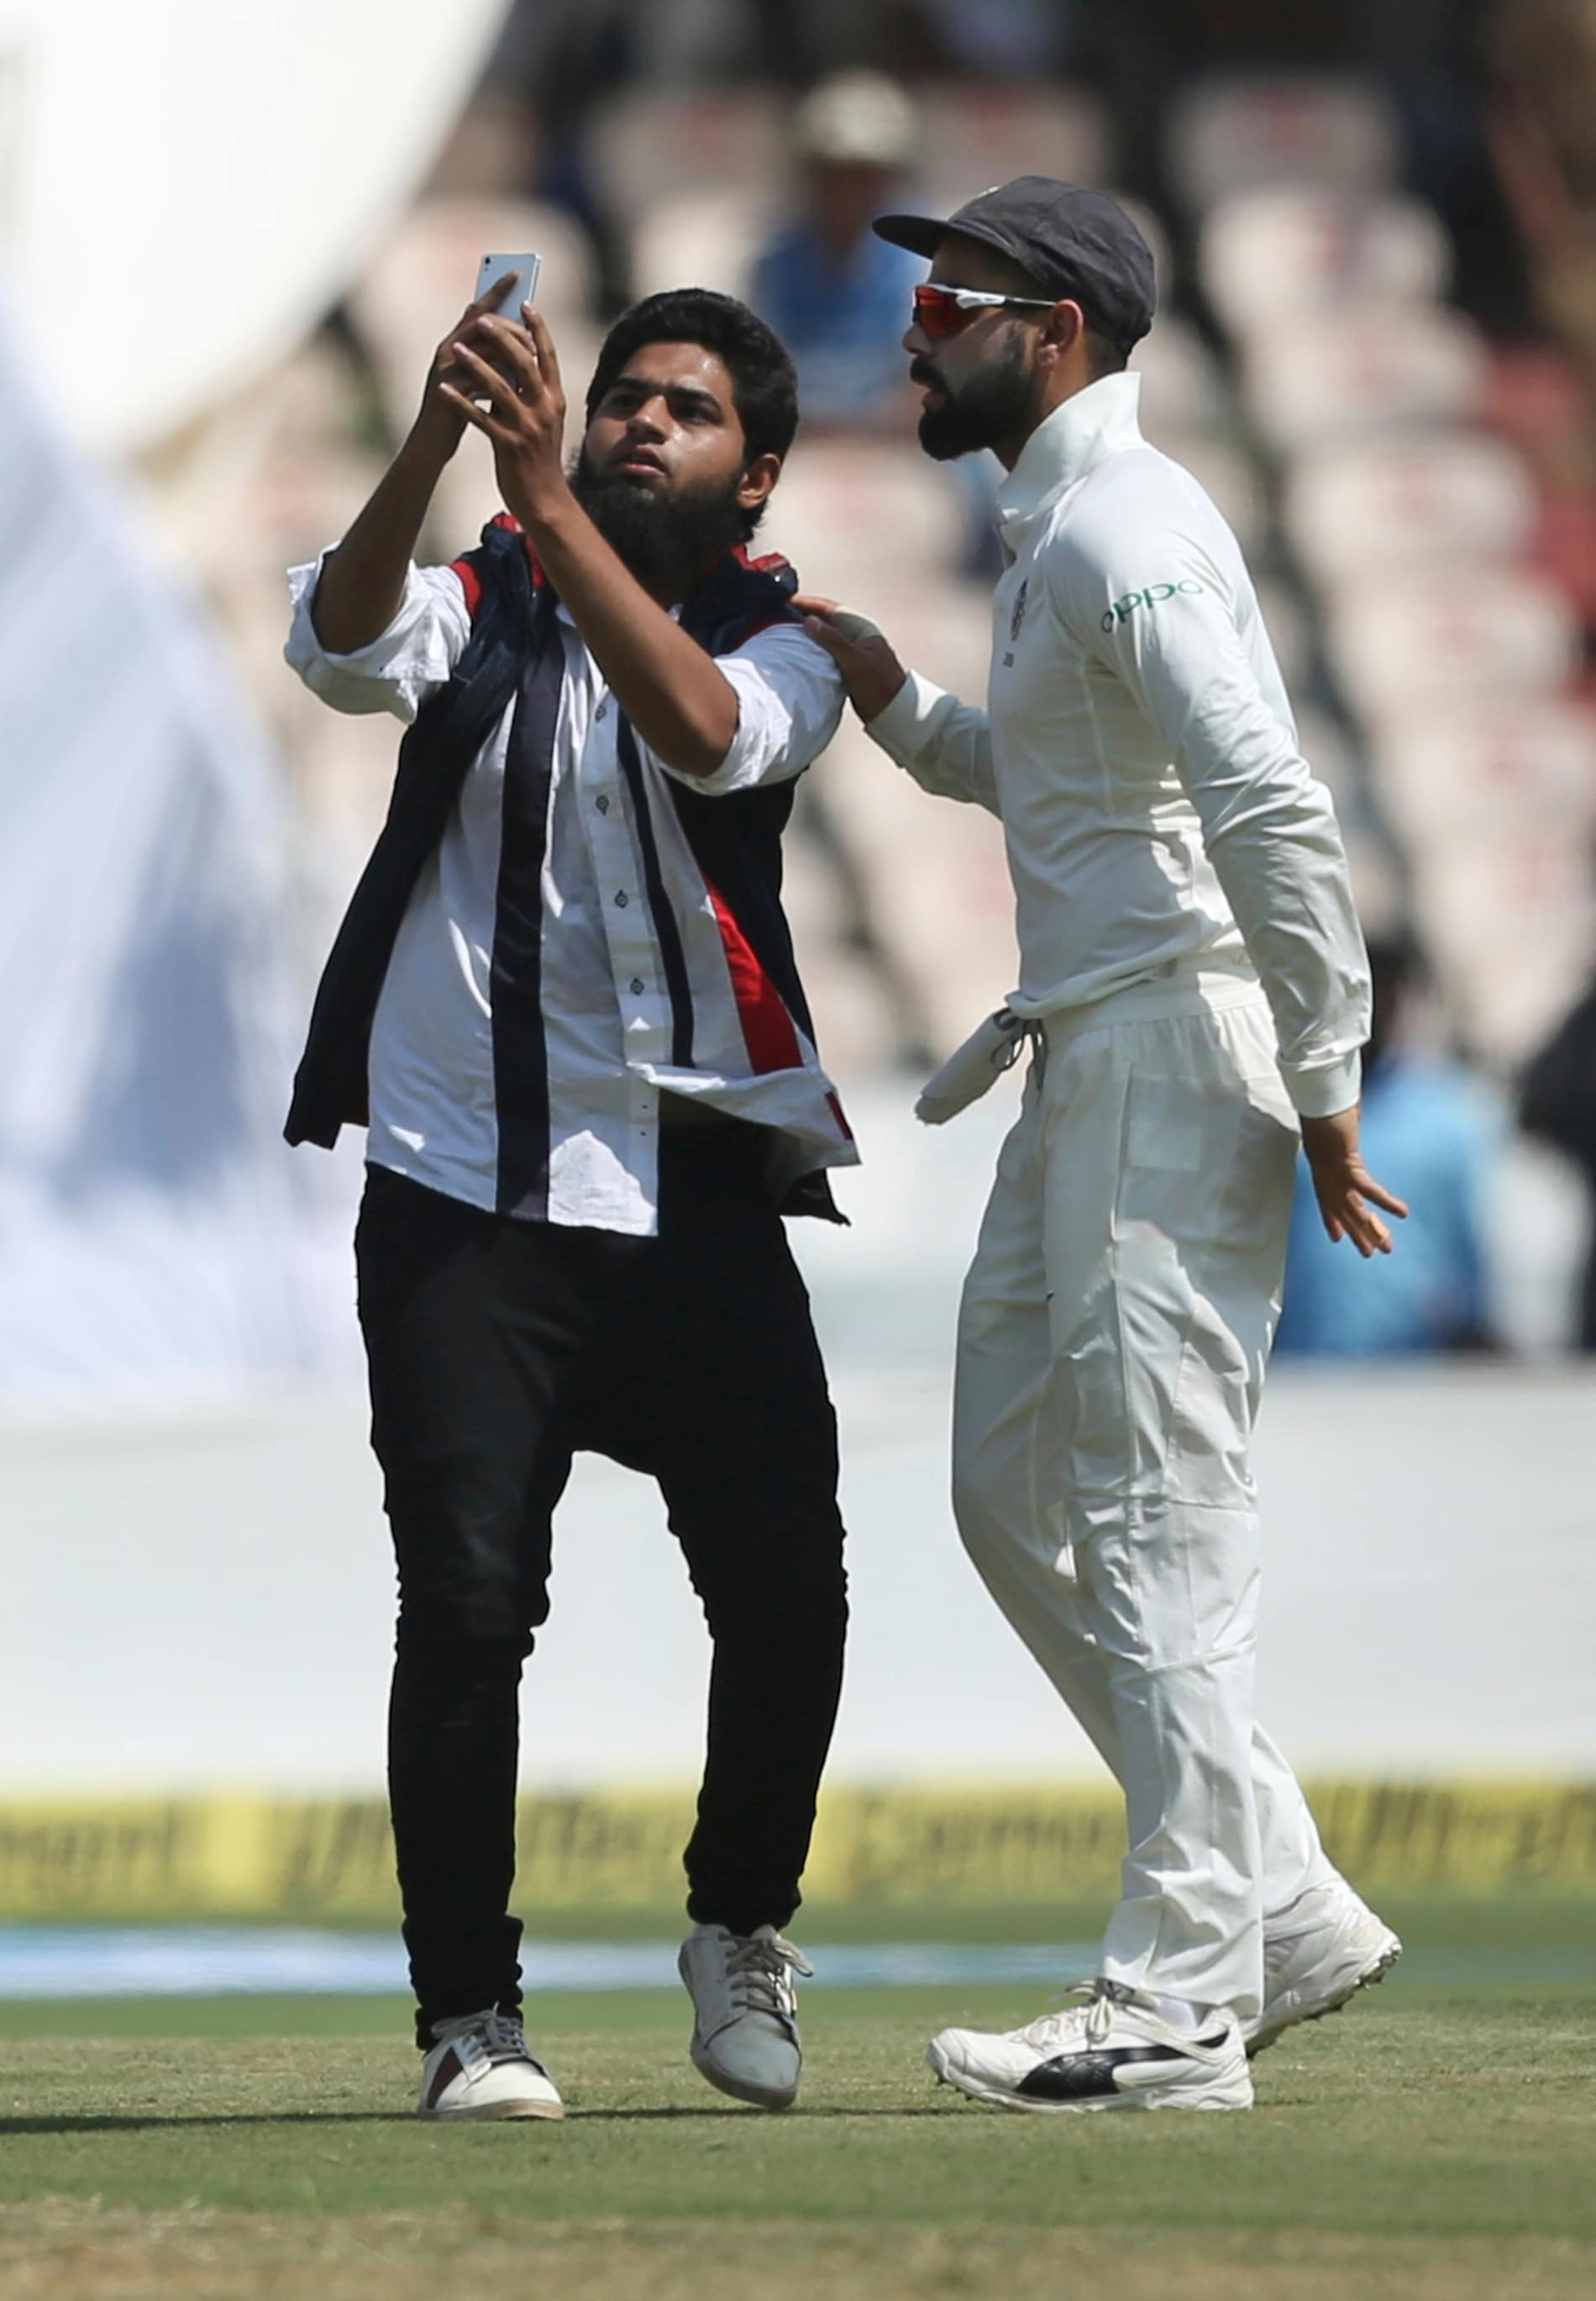 An Indian fan takes a selfie with cricketer Virat Kohli after running into the field disrupting the first day of the second cricket test match between India and West Indies in Hyderabad, India, Friday, Oct. 12, 2018. (AP Photo/Mahesh Kumar A.)